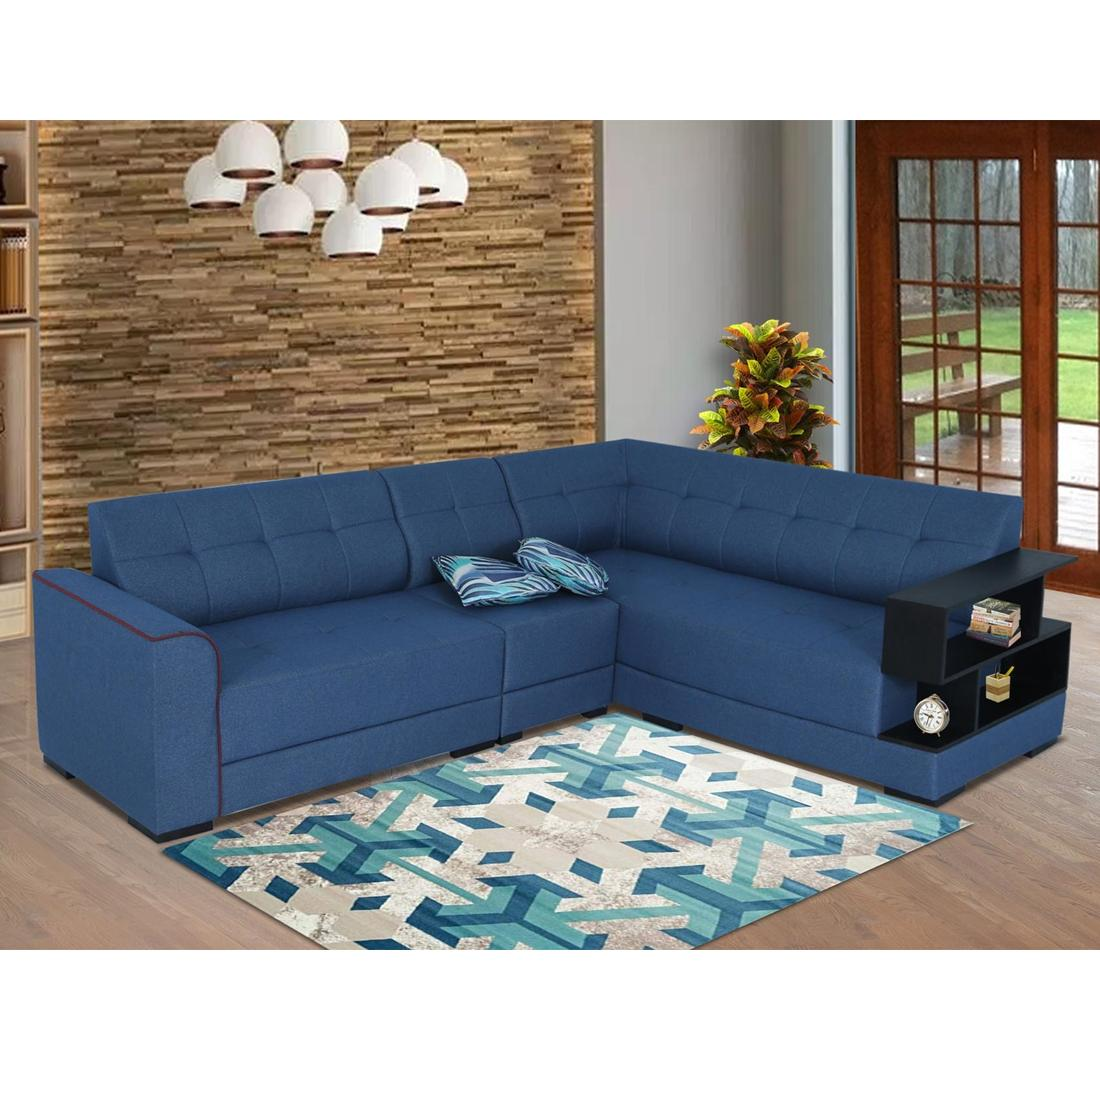 Picture of: Buy Aleena Fabric 6 Seater L Shape Sofa Right Blue Online Evok